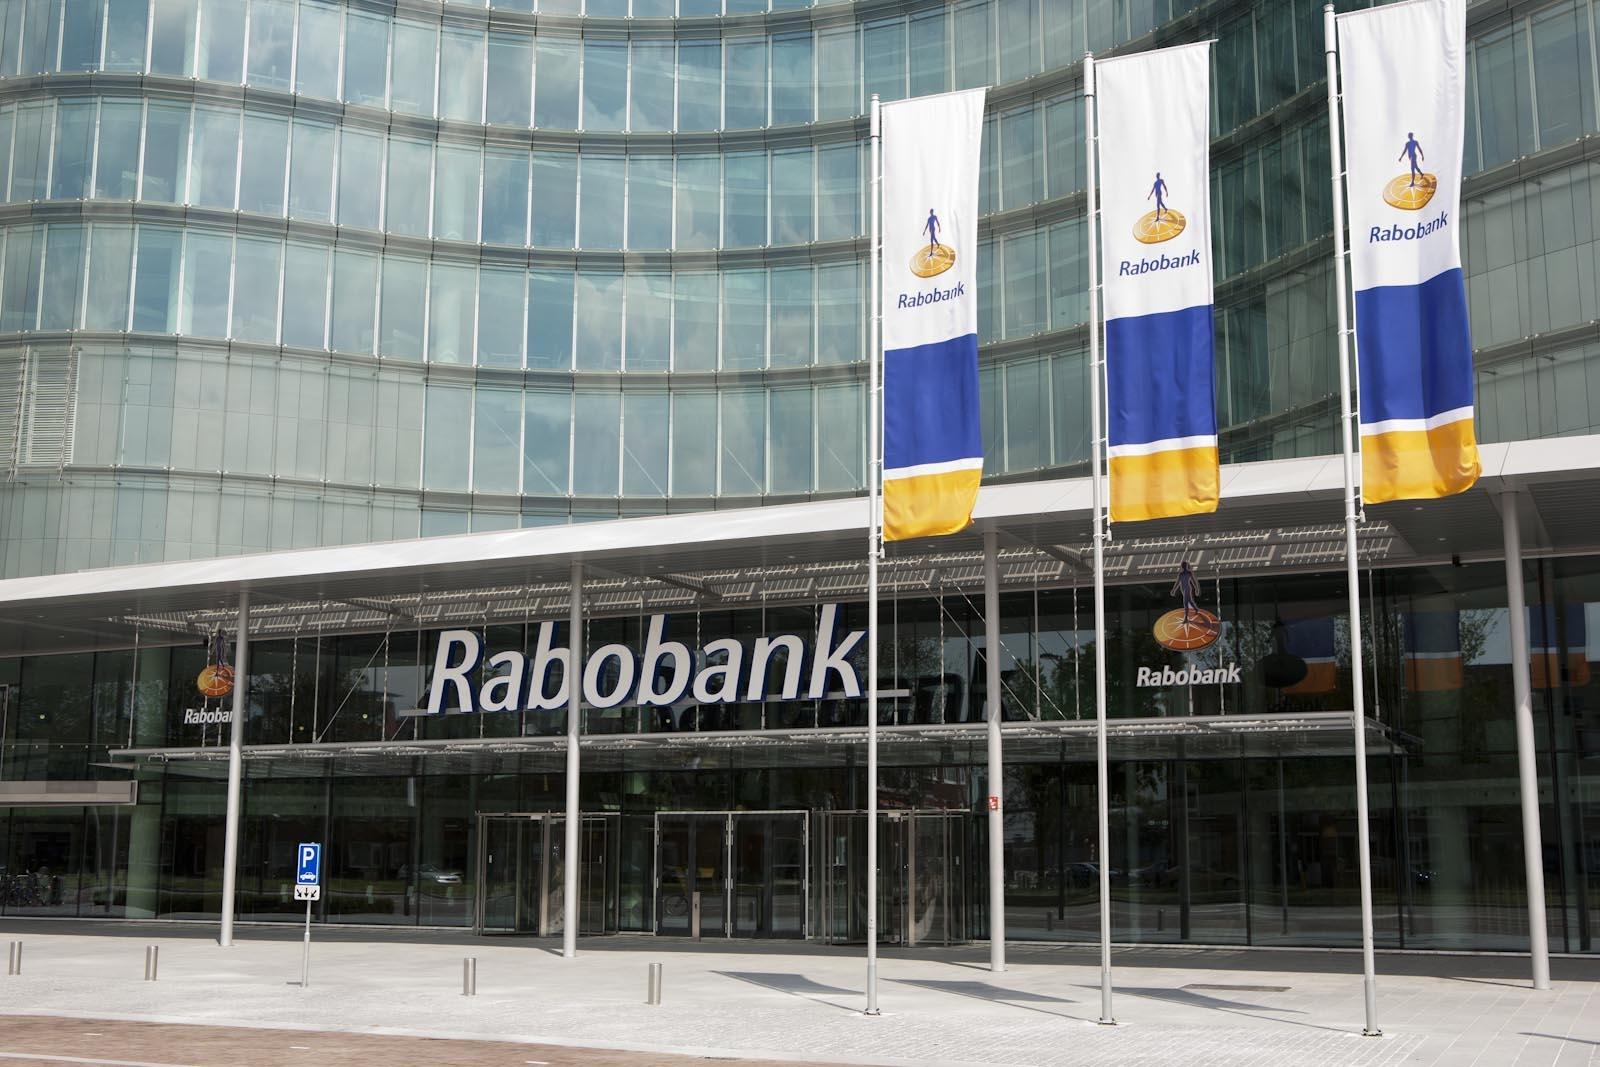 rabobank self-sovereign identity